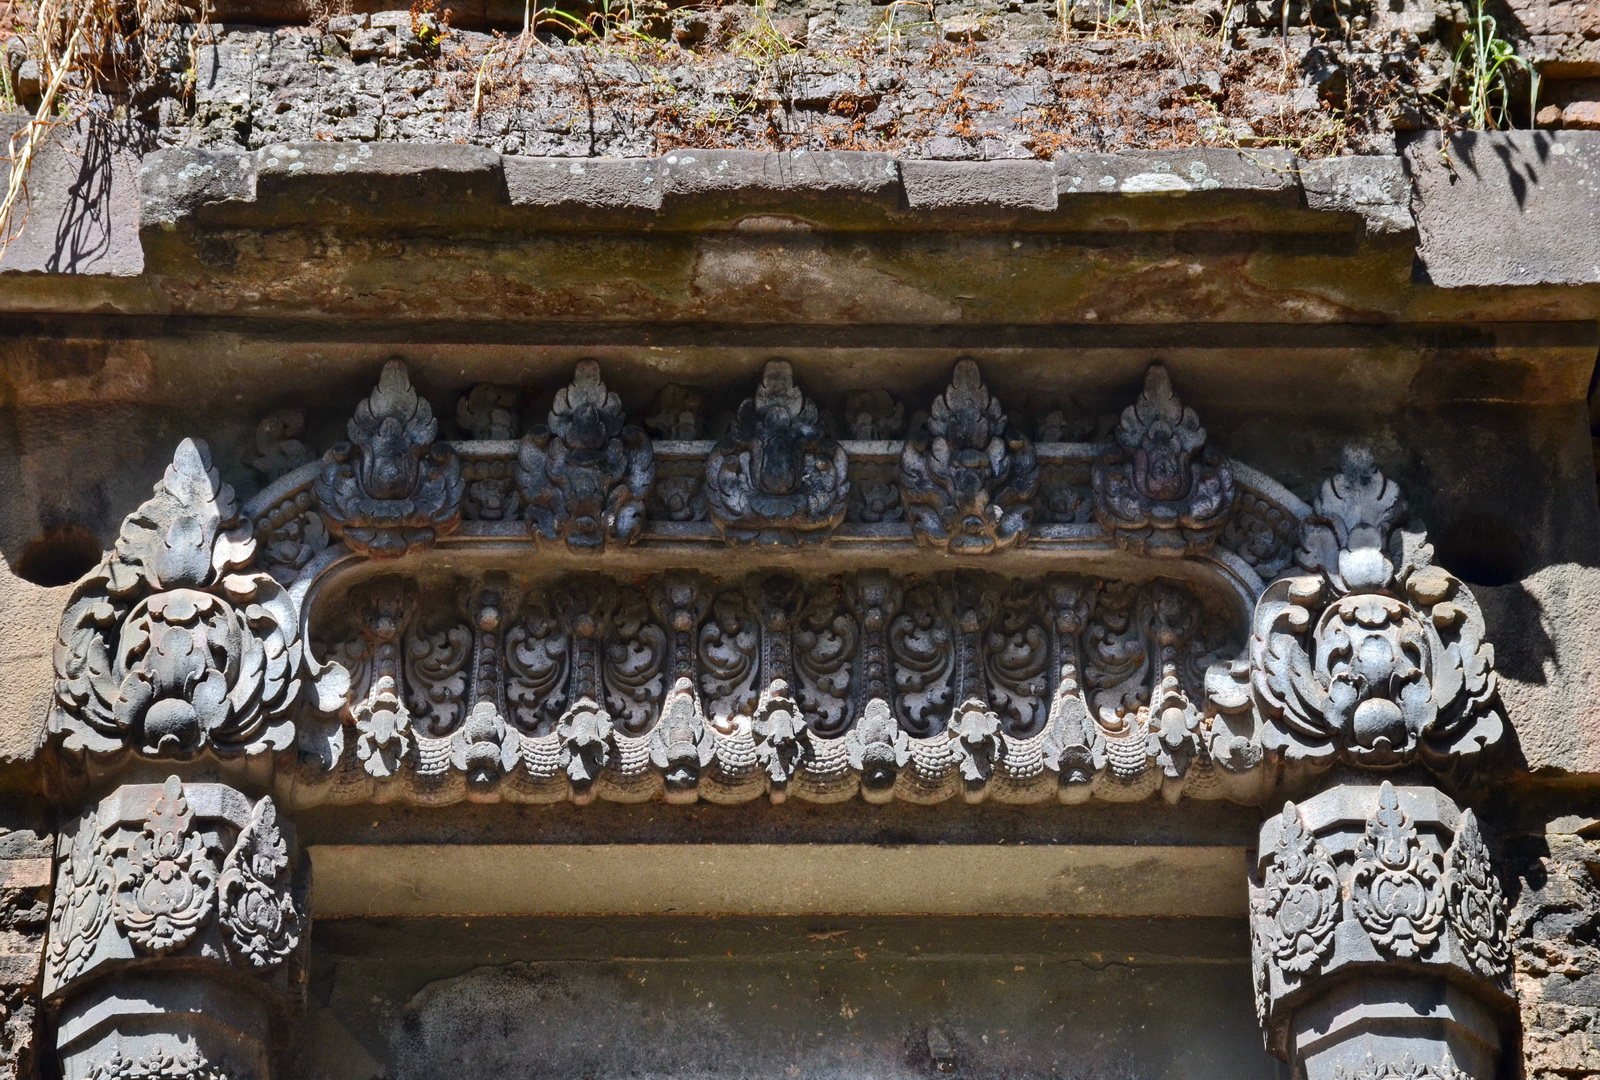 Some lesser known Angkor temples, Sambor lintel